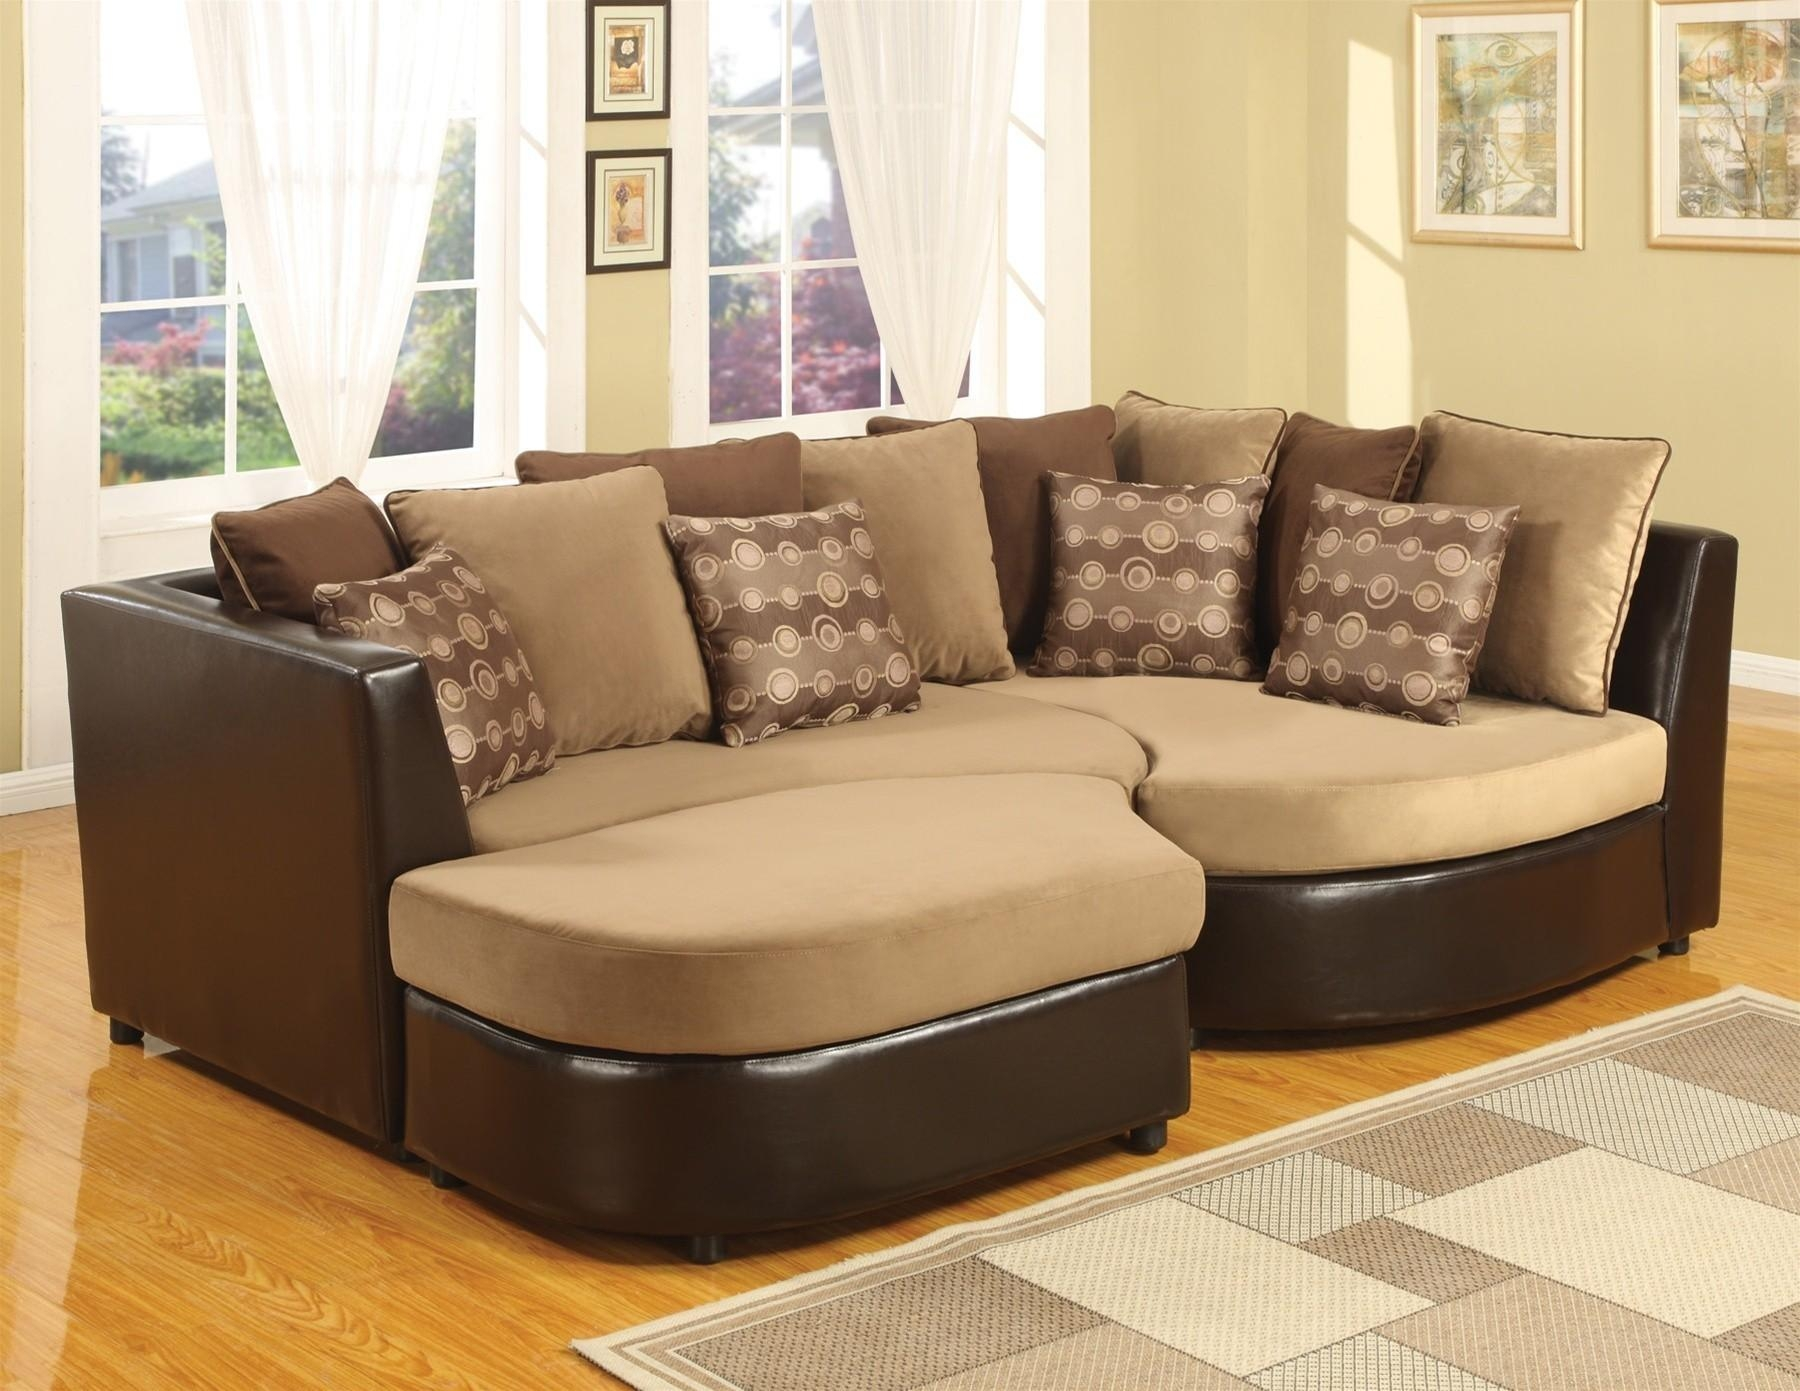 Round Couches Ikea Sectional Sectional Sofas On Sale (View 19 of 20)